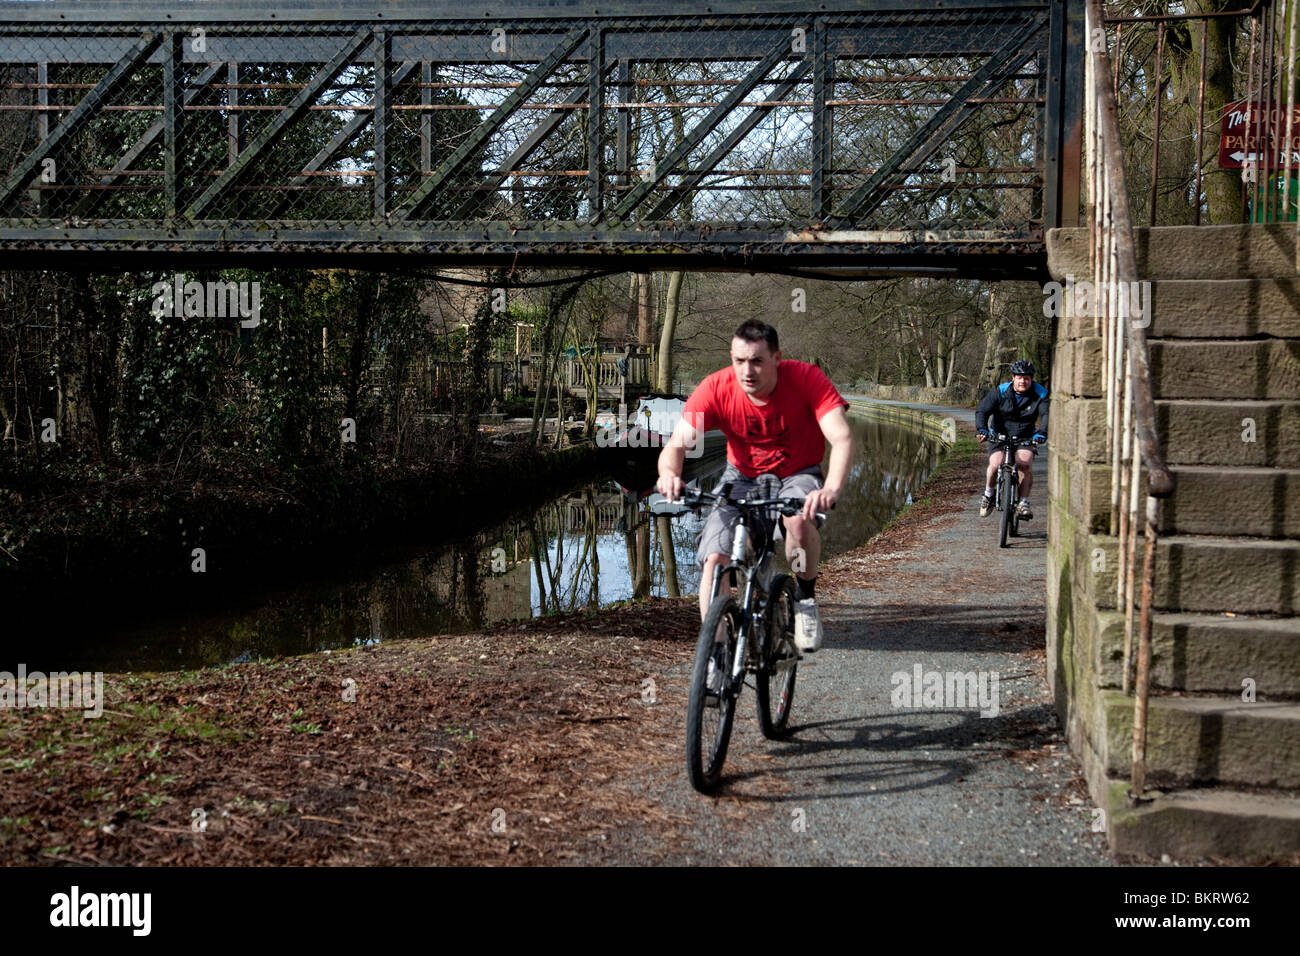 Man on a bike riding along the canal towpath Derbyshire England UK - Stock Image